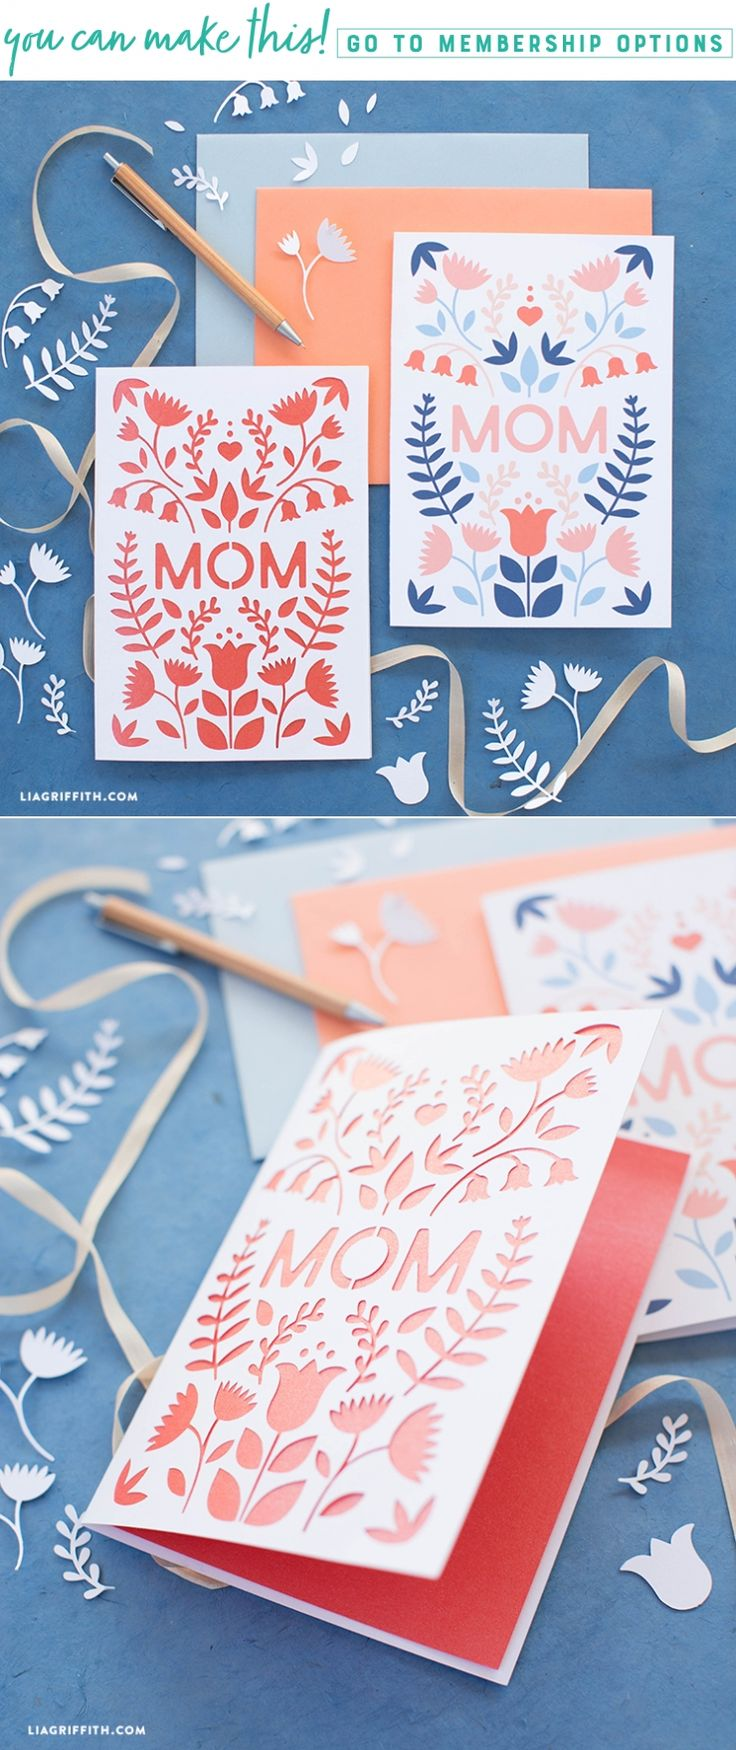 Mother Dearest 🌷❤️ The month to celebrate our mothers is quickly approaching. Show her how much you care by giving her a handmade sentiment. These printable and papercut Mother's Day Cards are a great canvas for your words of appreciation for the most important woman in your life - your mother. https://liagriffith.com/papercut-mothers-day-card/ * * * #mother #mothers #mothersday #mothersdayweekend #diycard #stationary #stationarylove #stationaryaddict #diyidea #diyideas #diycraft #diycrafts…